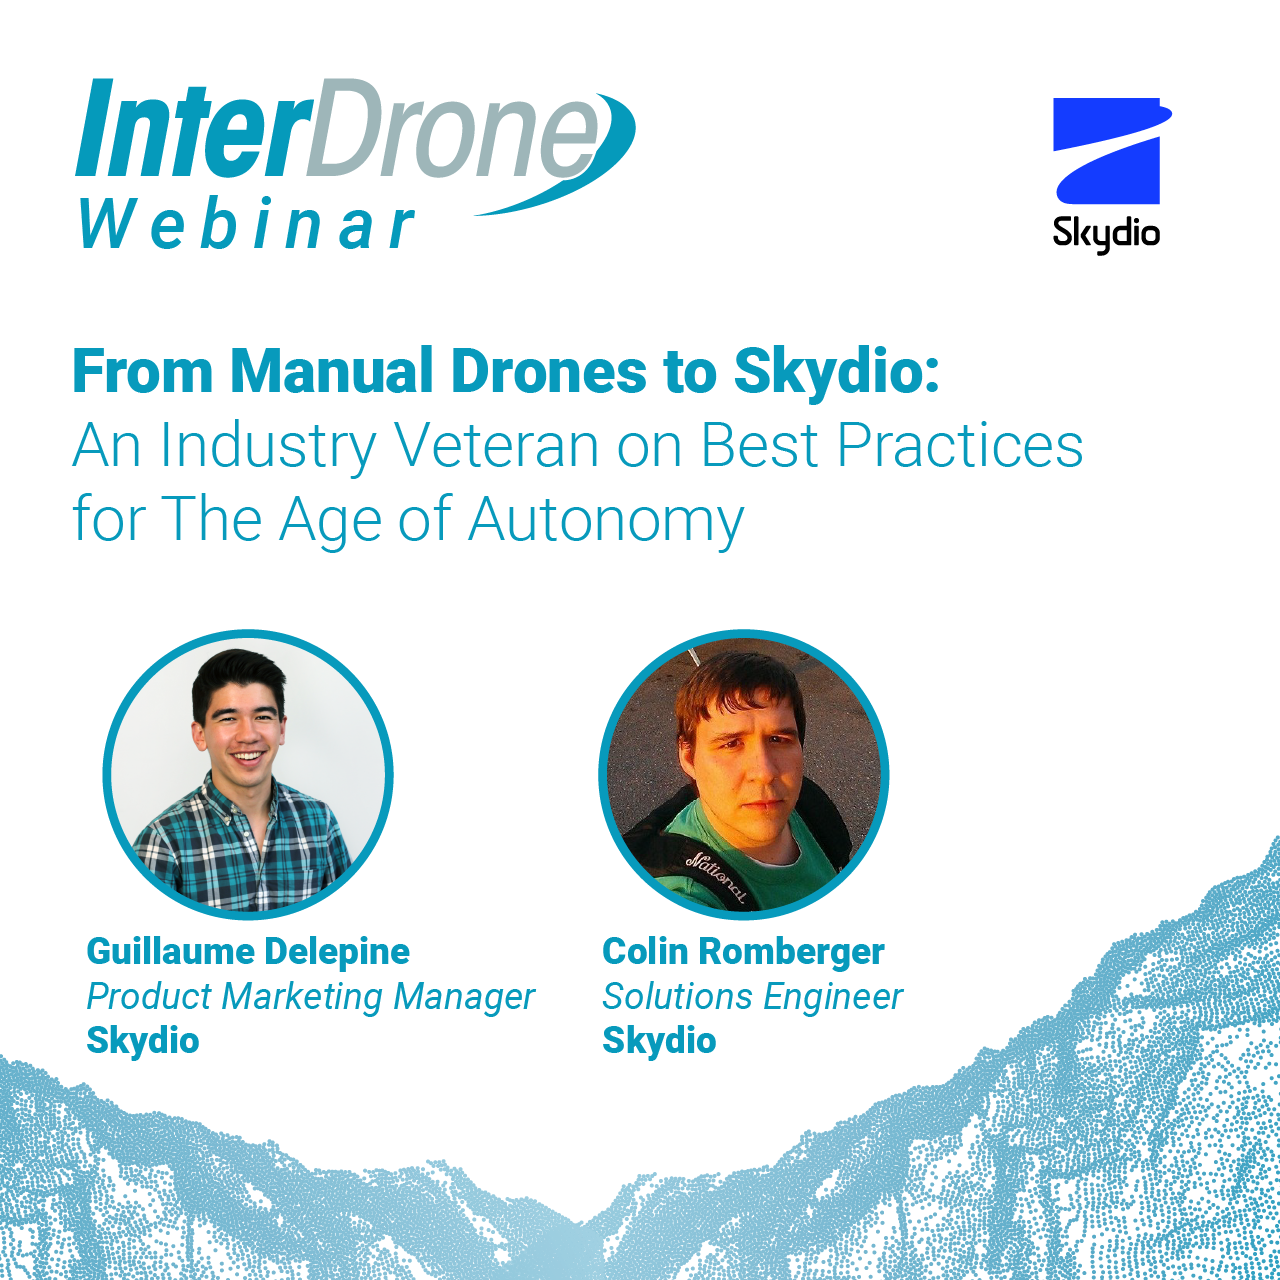 from-manual-drones-to-skydio-an-industry-veteran-on-best-practices-for-the-age-of-autonomy